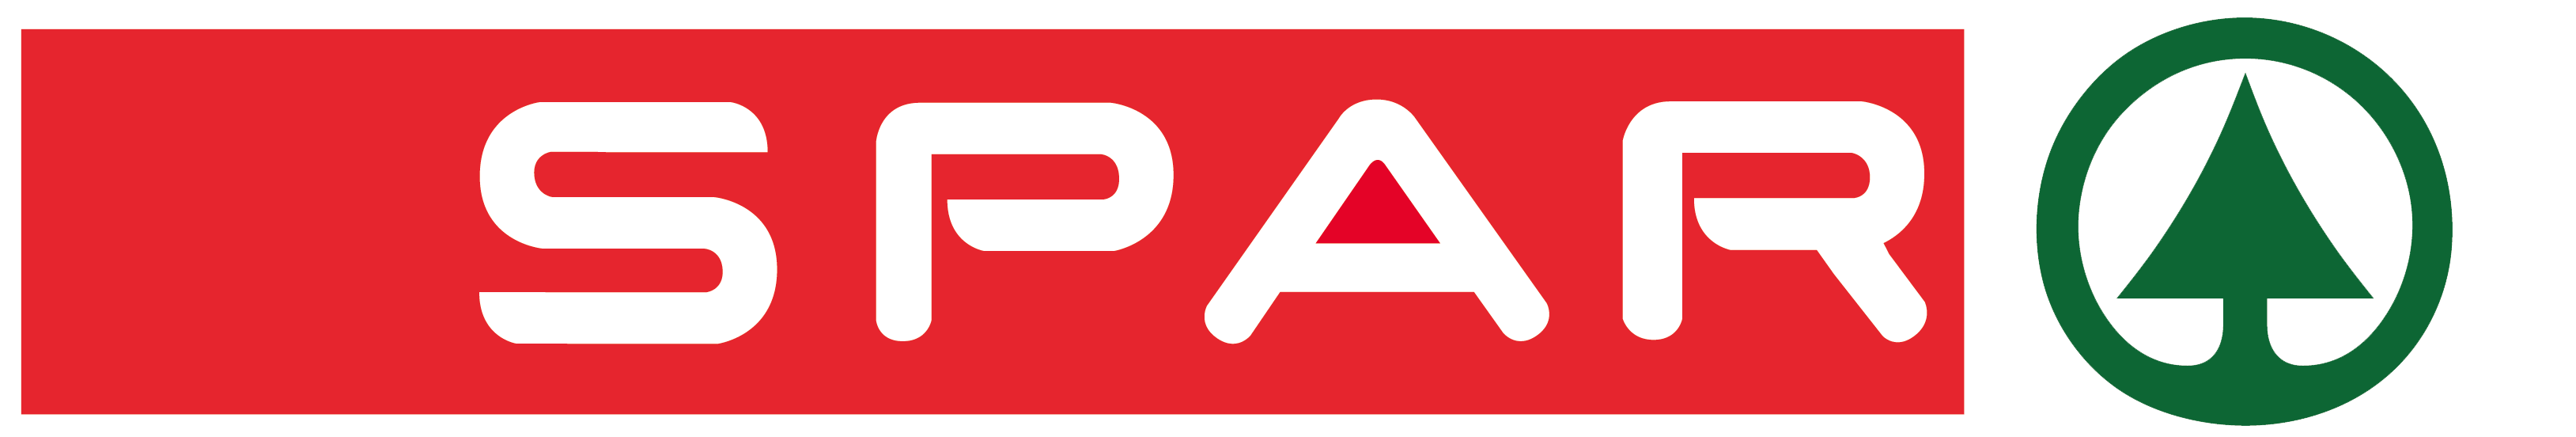 SPAR - L'Officiel de la Franchise